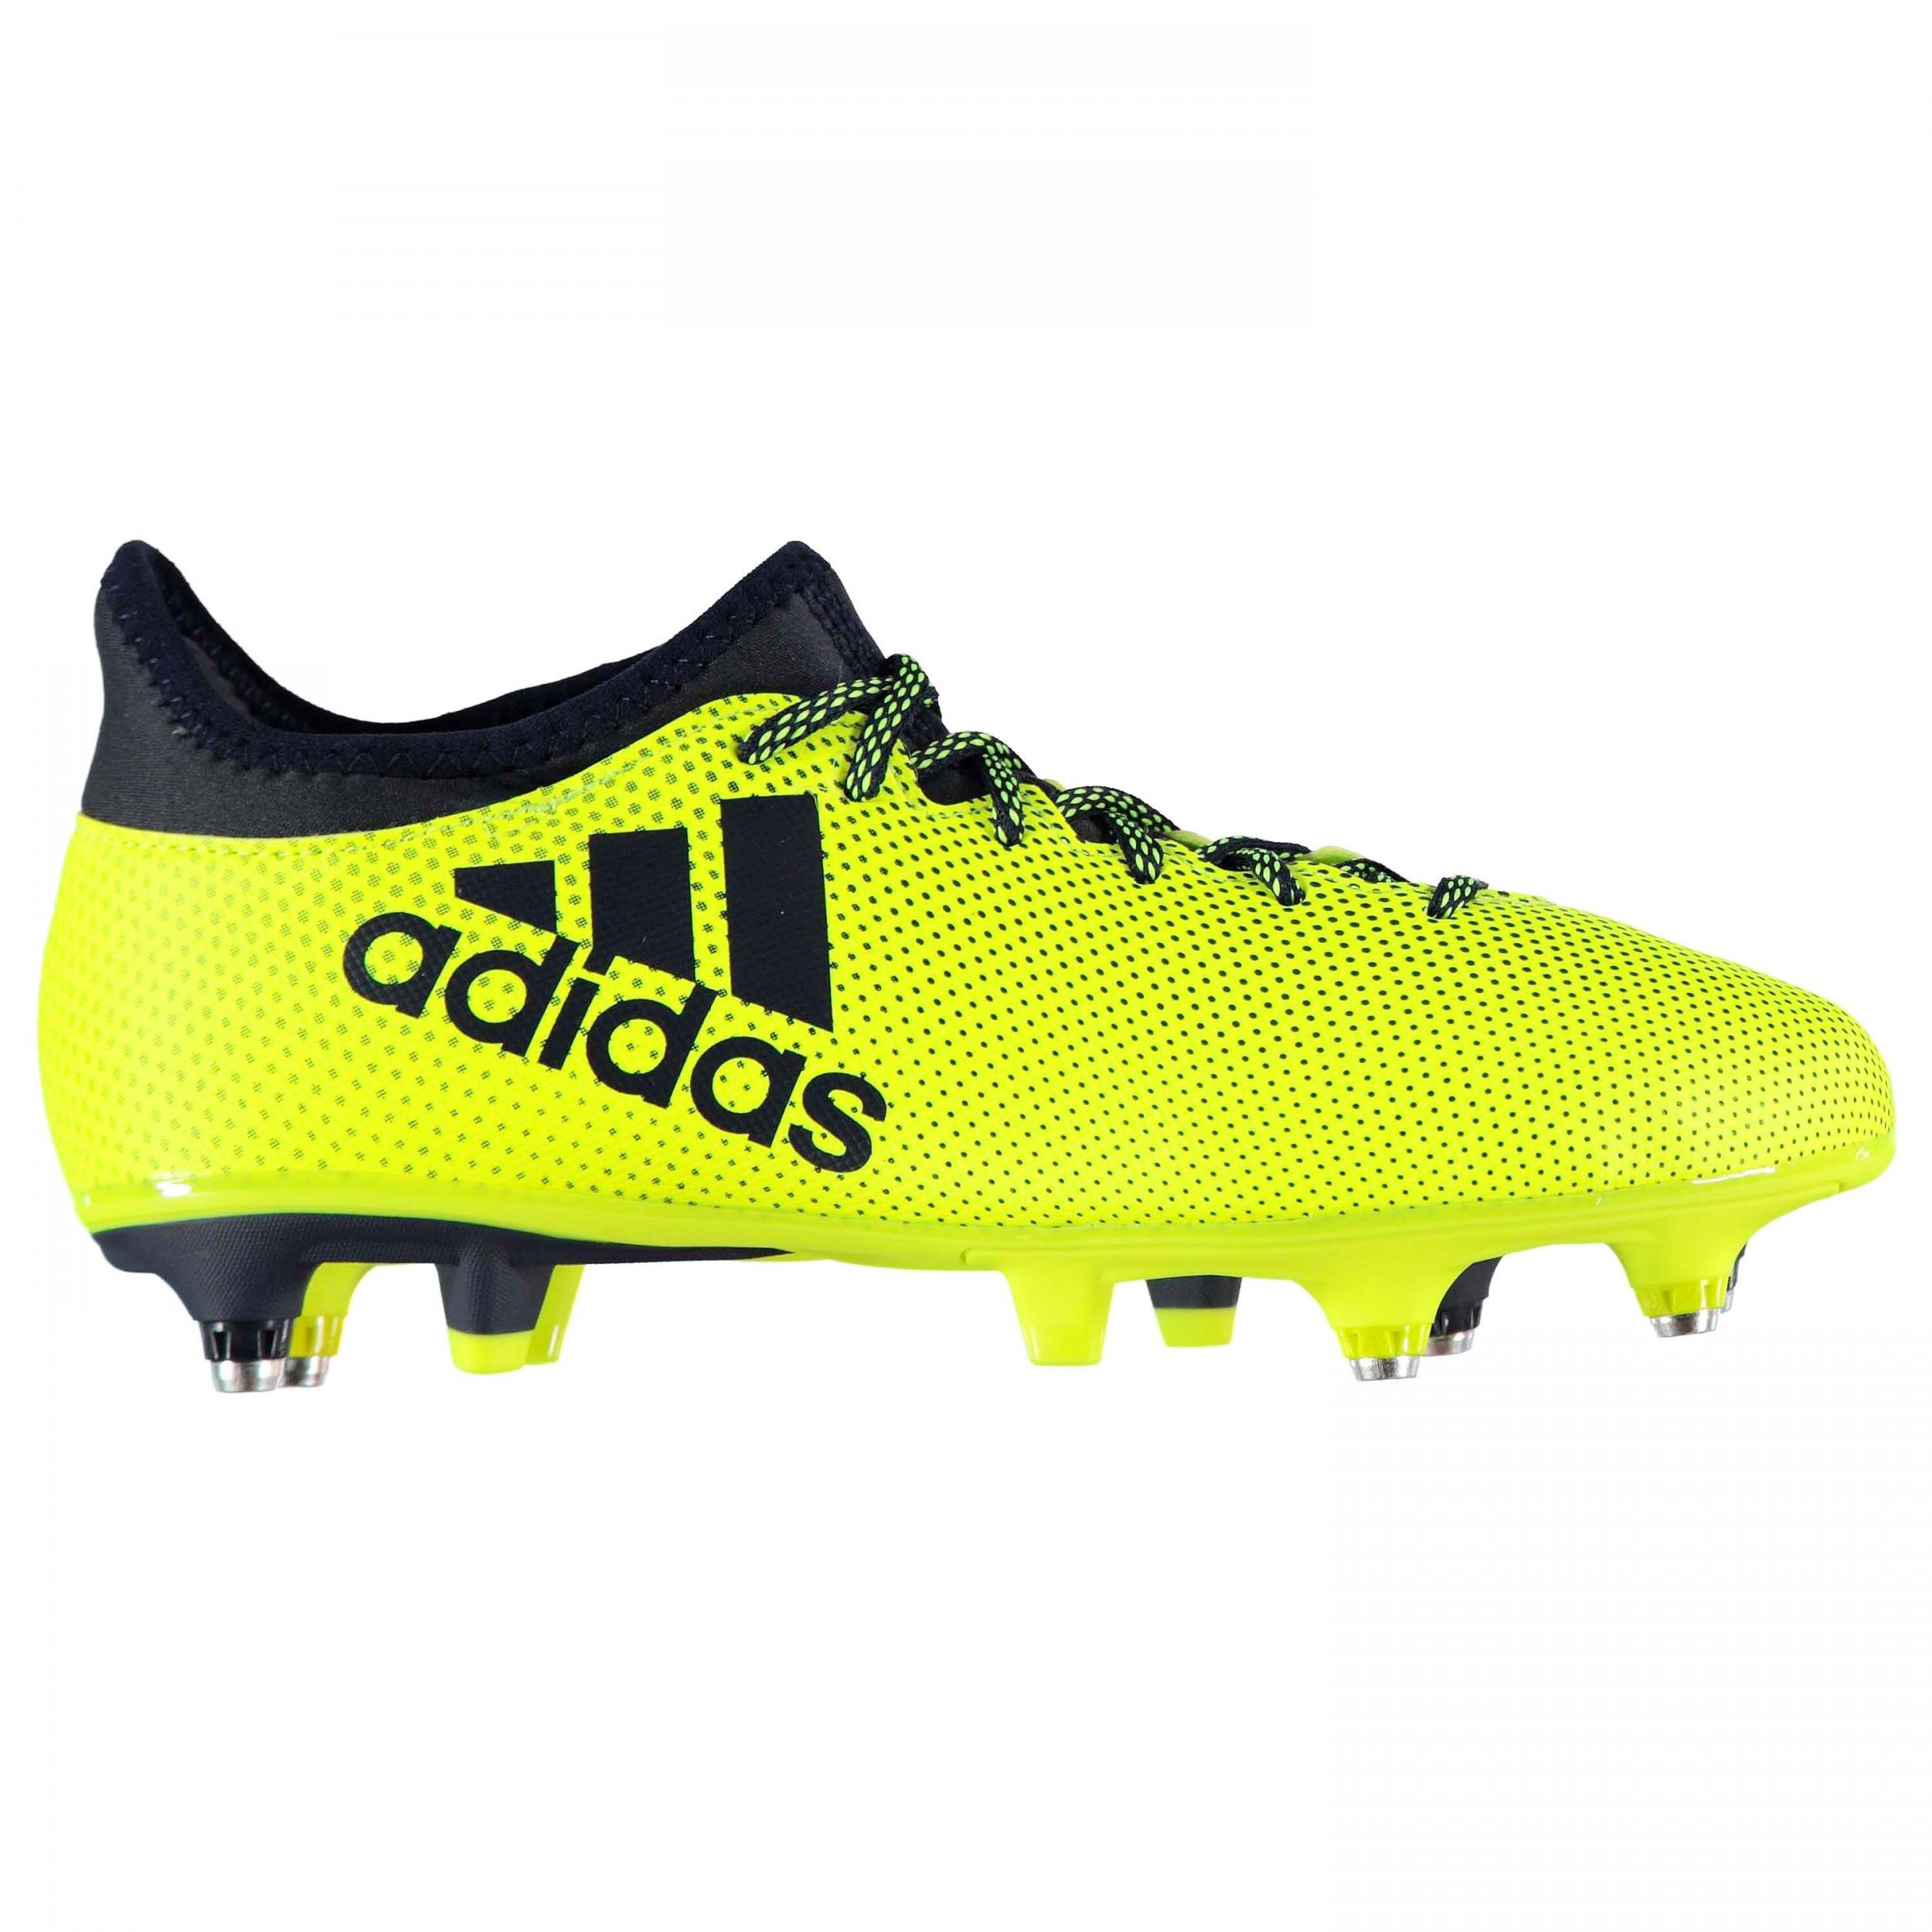 492860c036ac4 10 best kids' football boots | The Independent